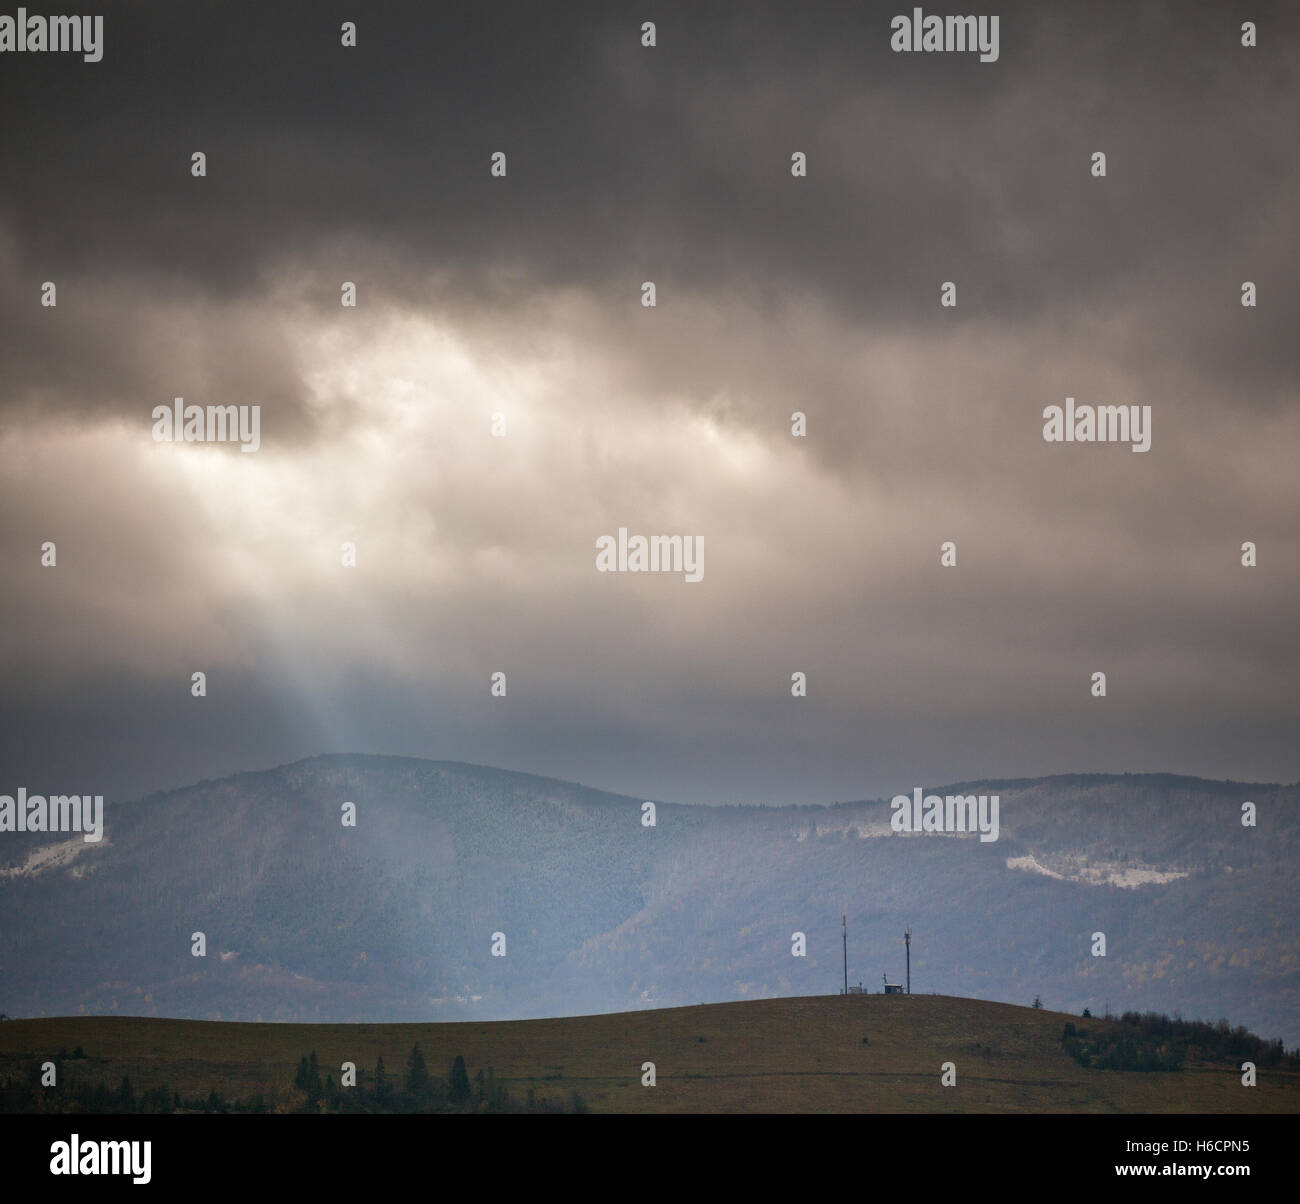 Overcast scene in cloudy mountains. November rain - Stock Image